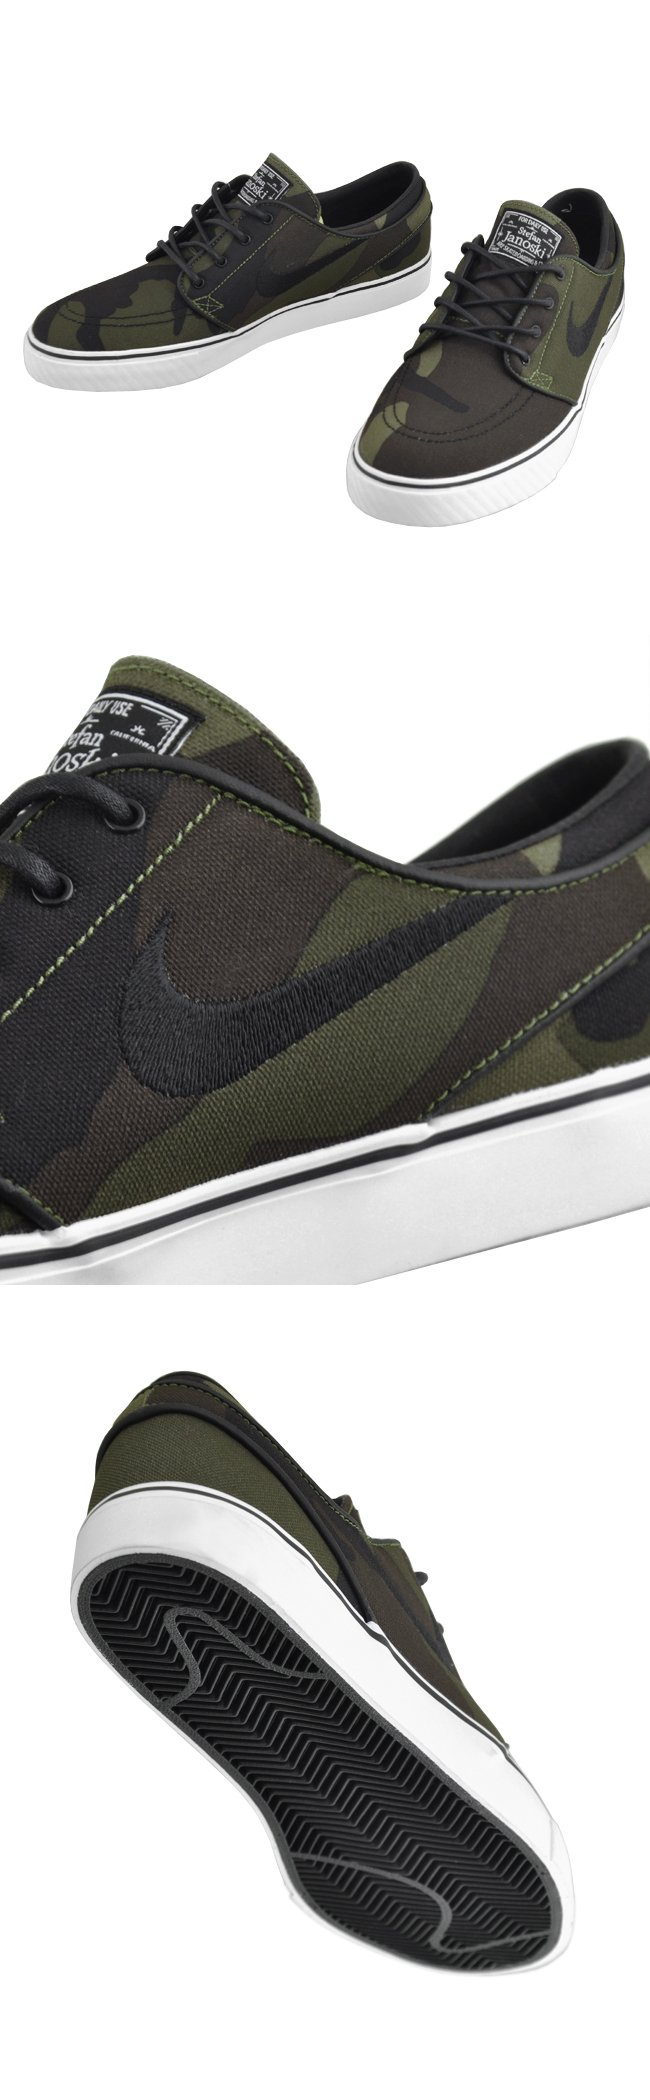 Nike SB Stefan Janoski 'Camo' - Another Look